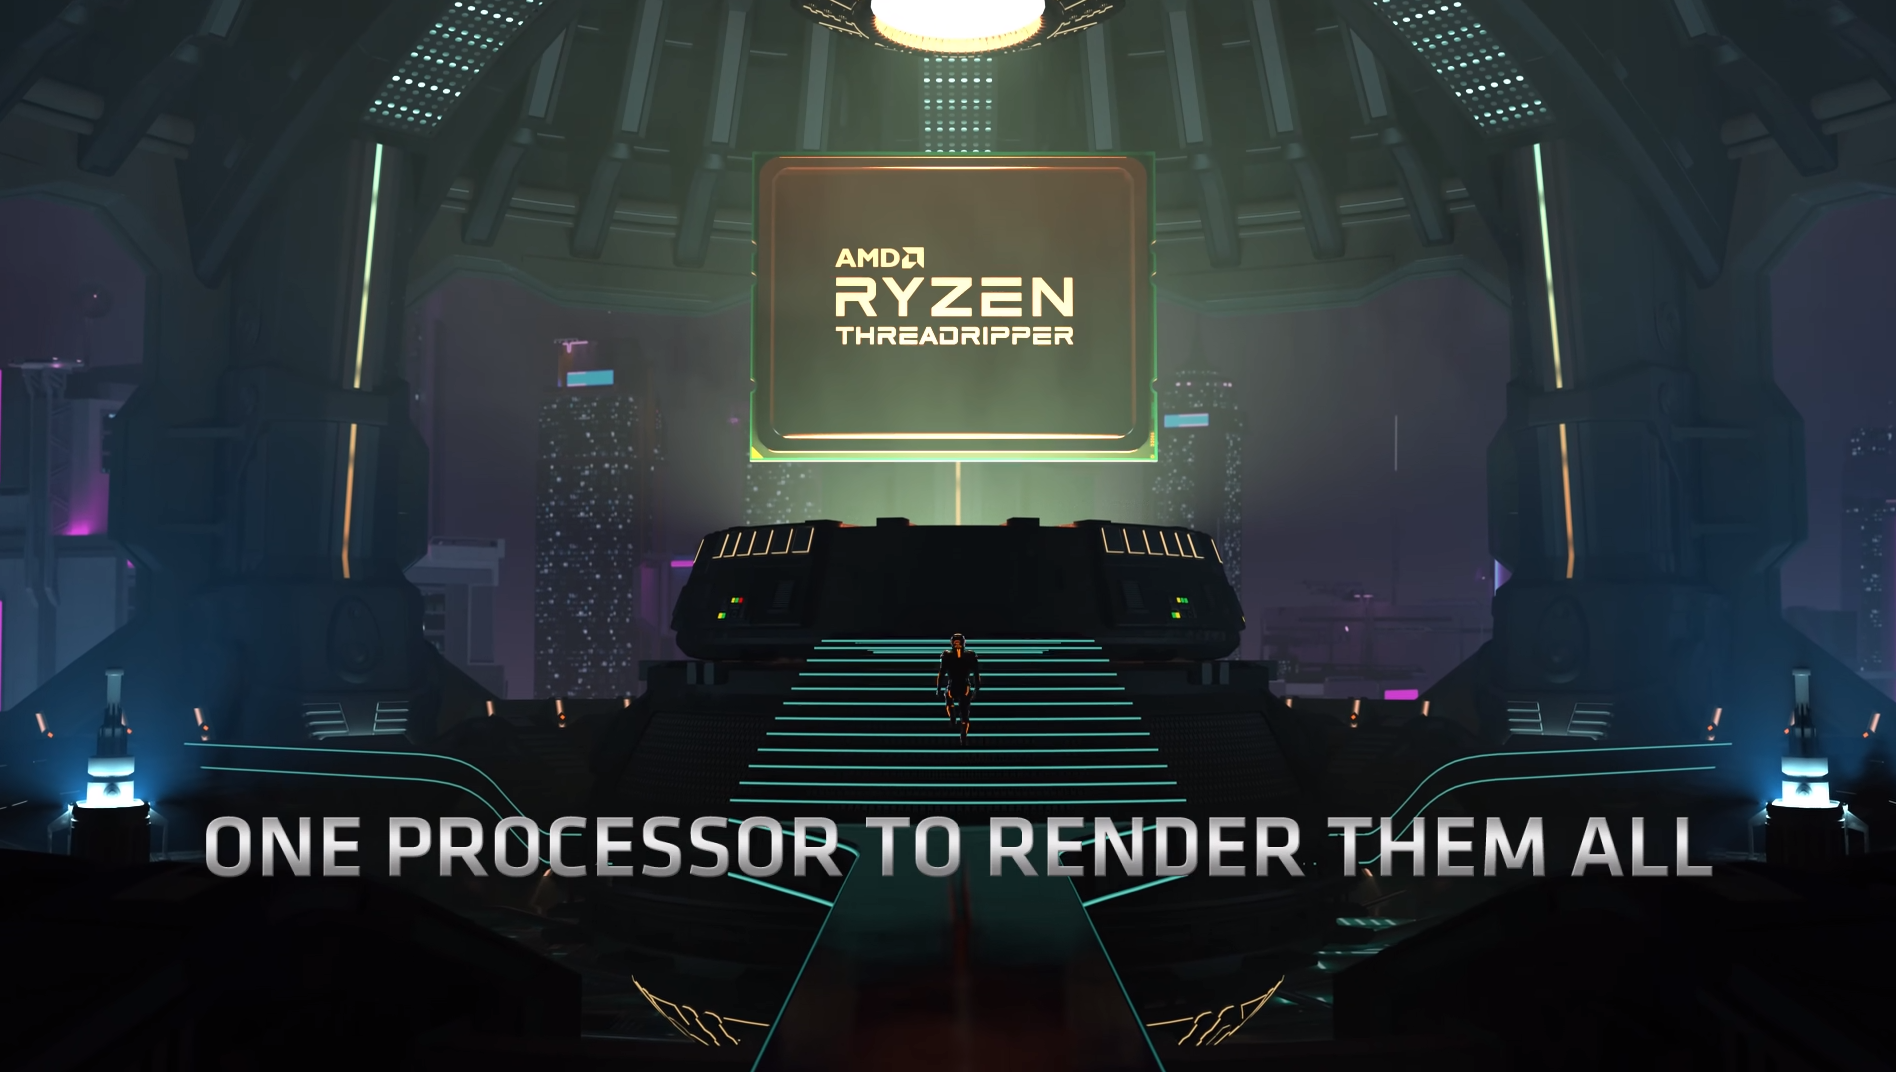 Everything to know about the AMD Ryzen Threadripper 3990x